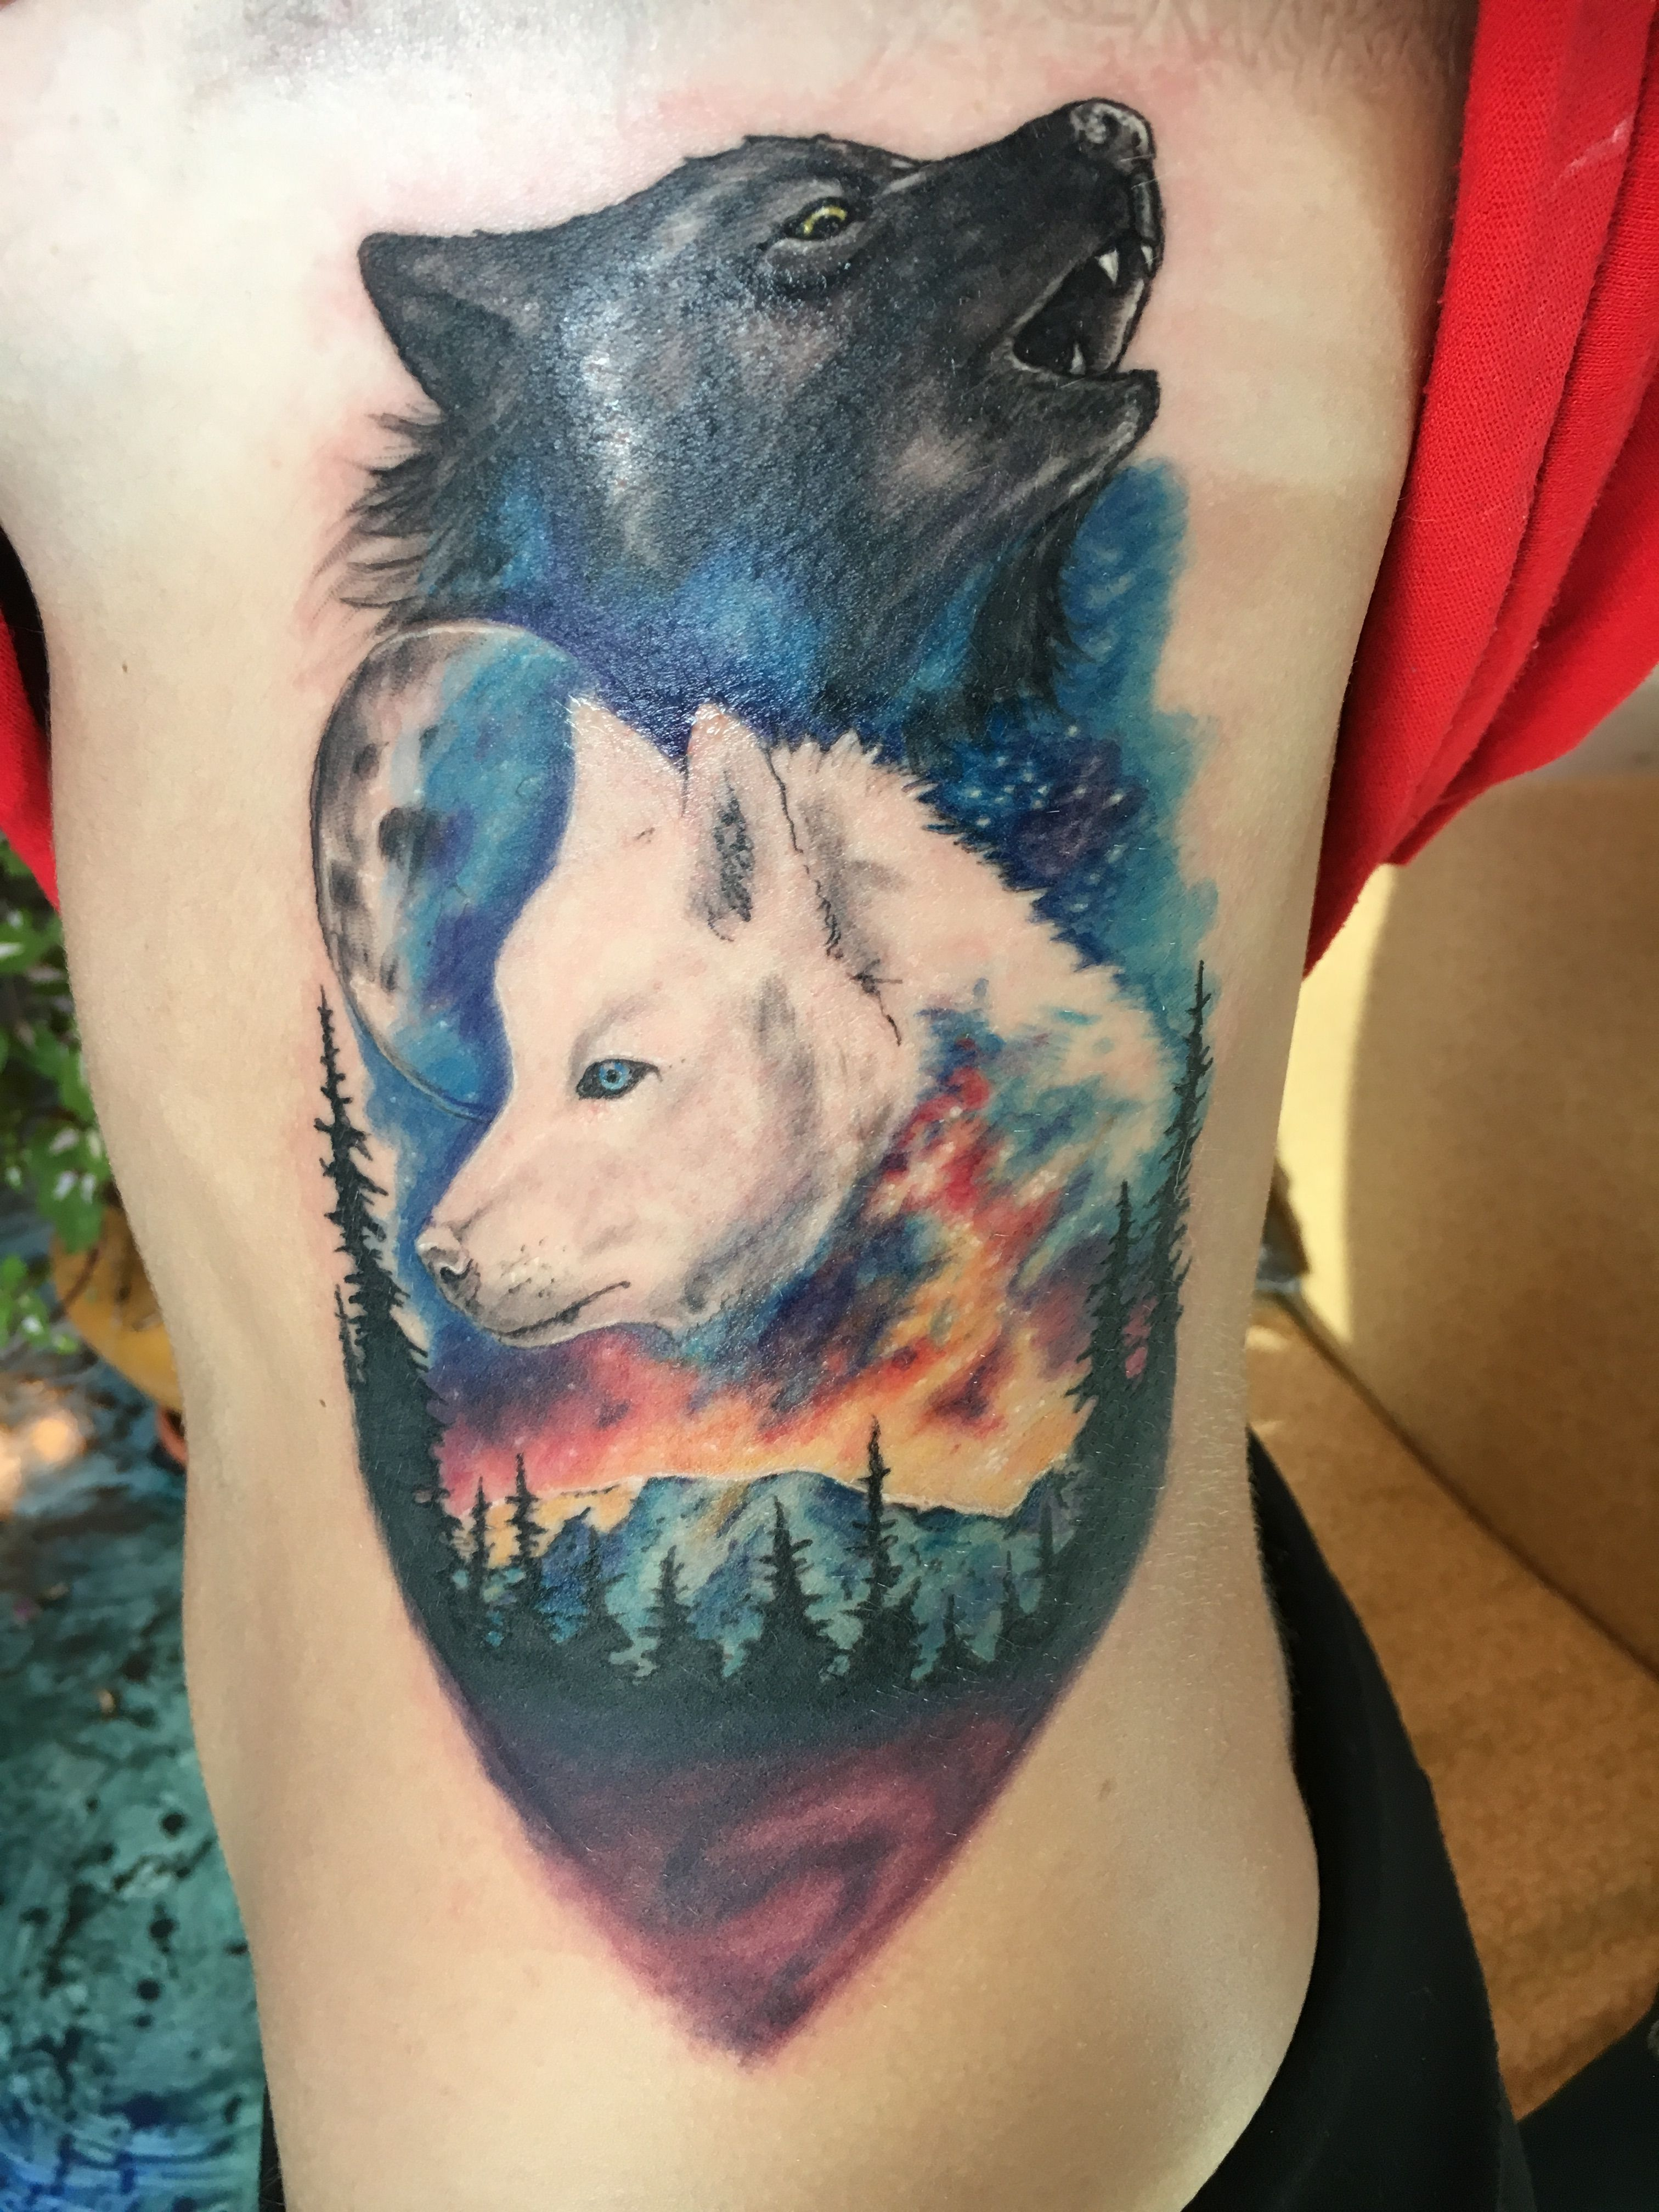 Battle of two wolves tattoo